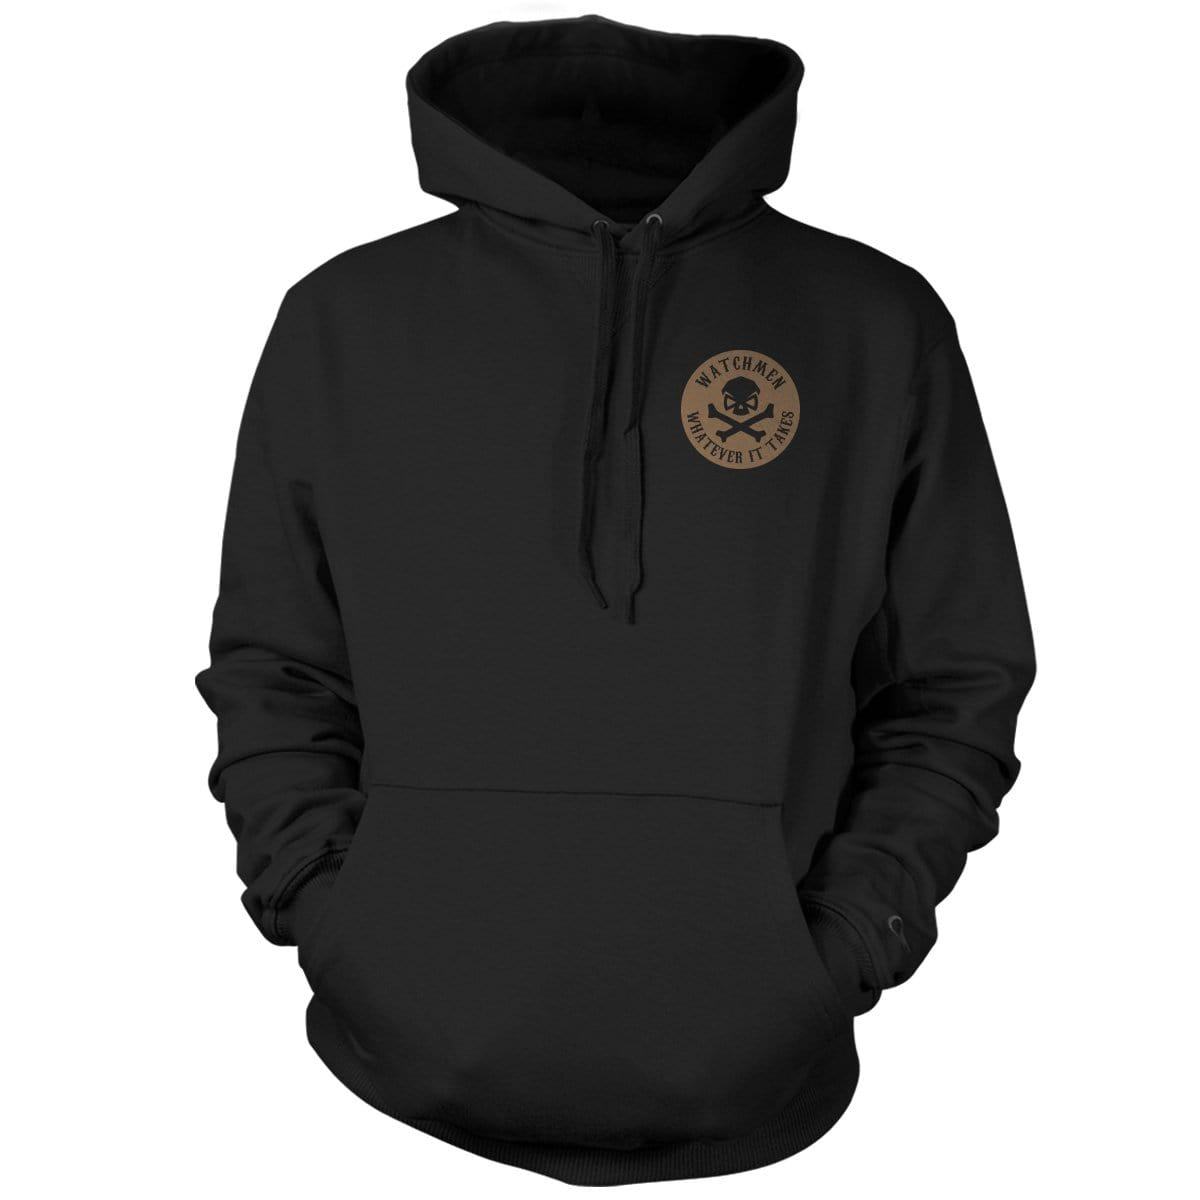 PHUMC Watchmen Chapter Hoodie - Pipe Hitters Union